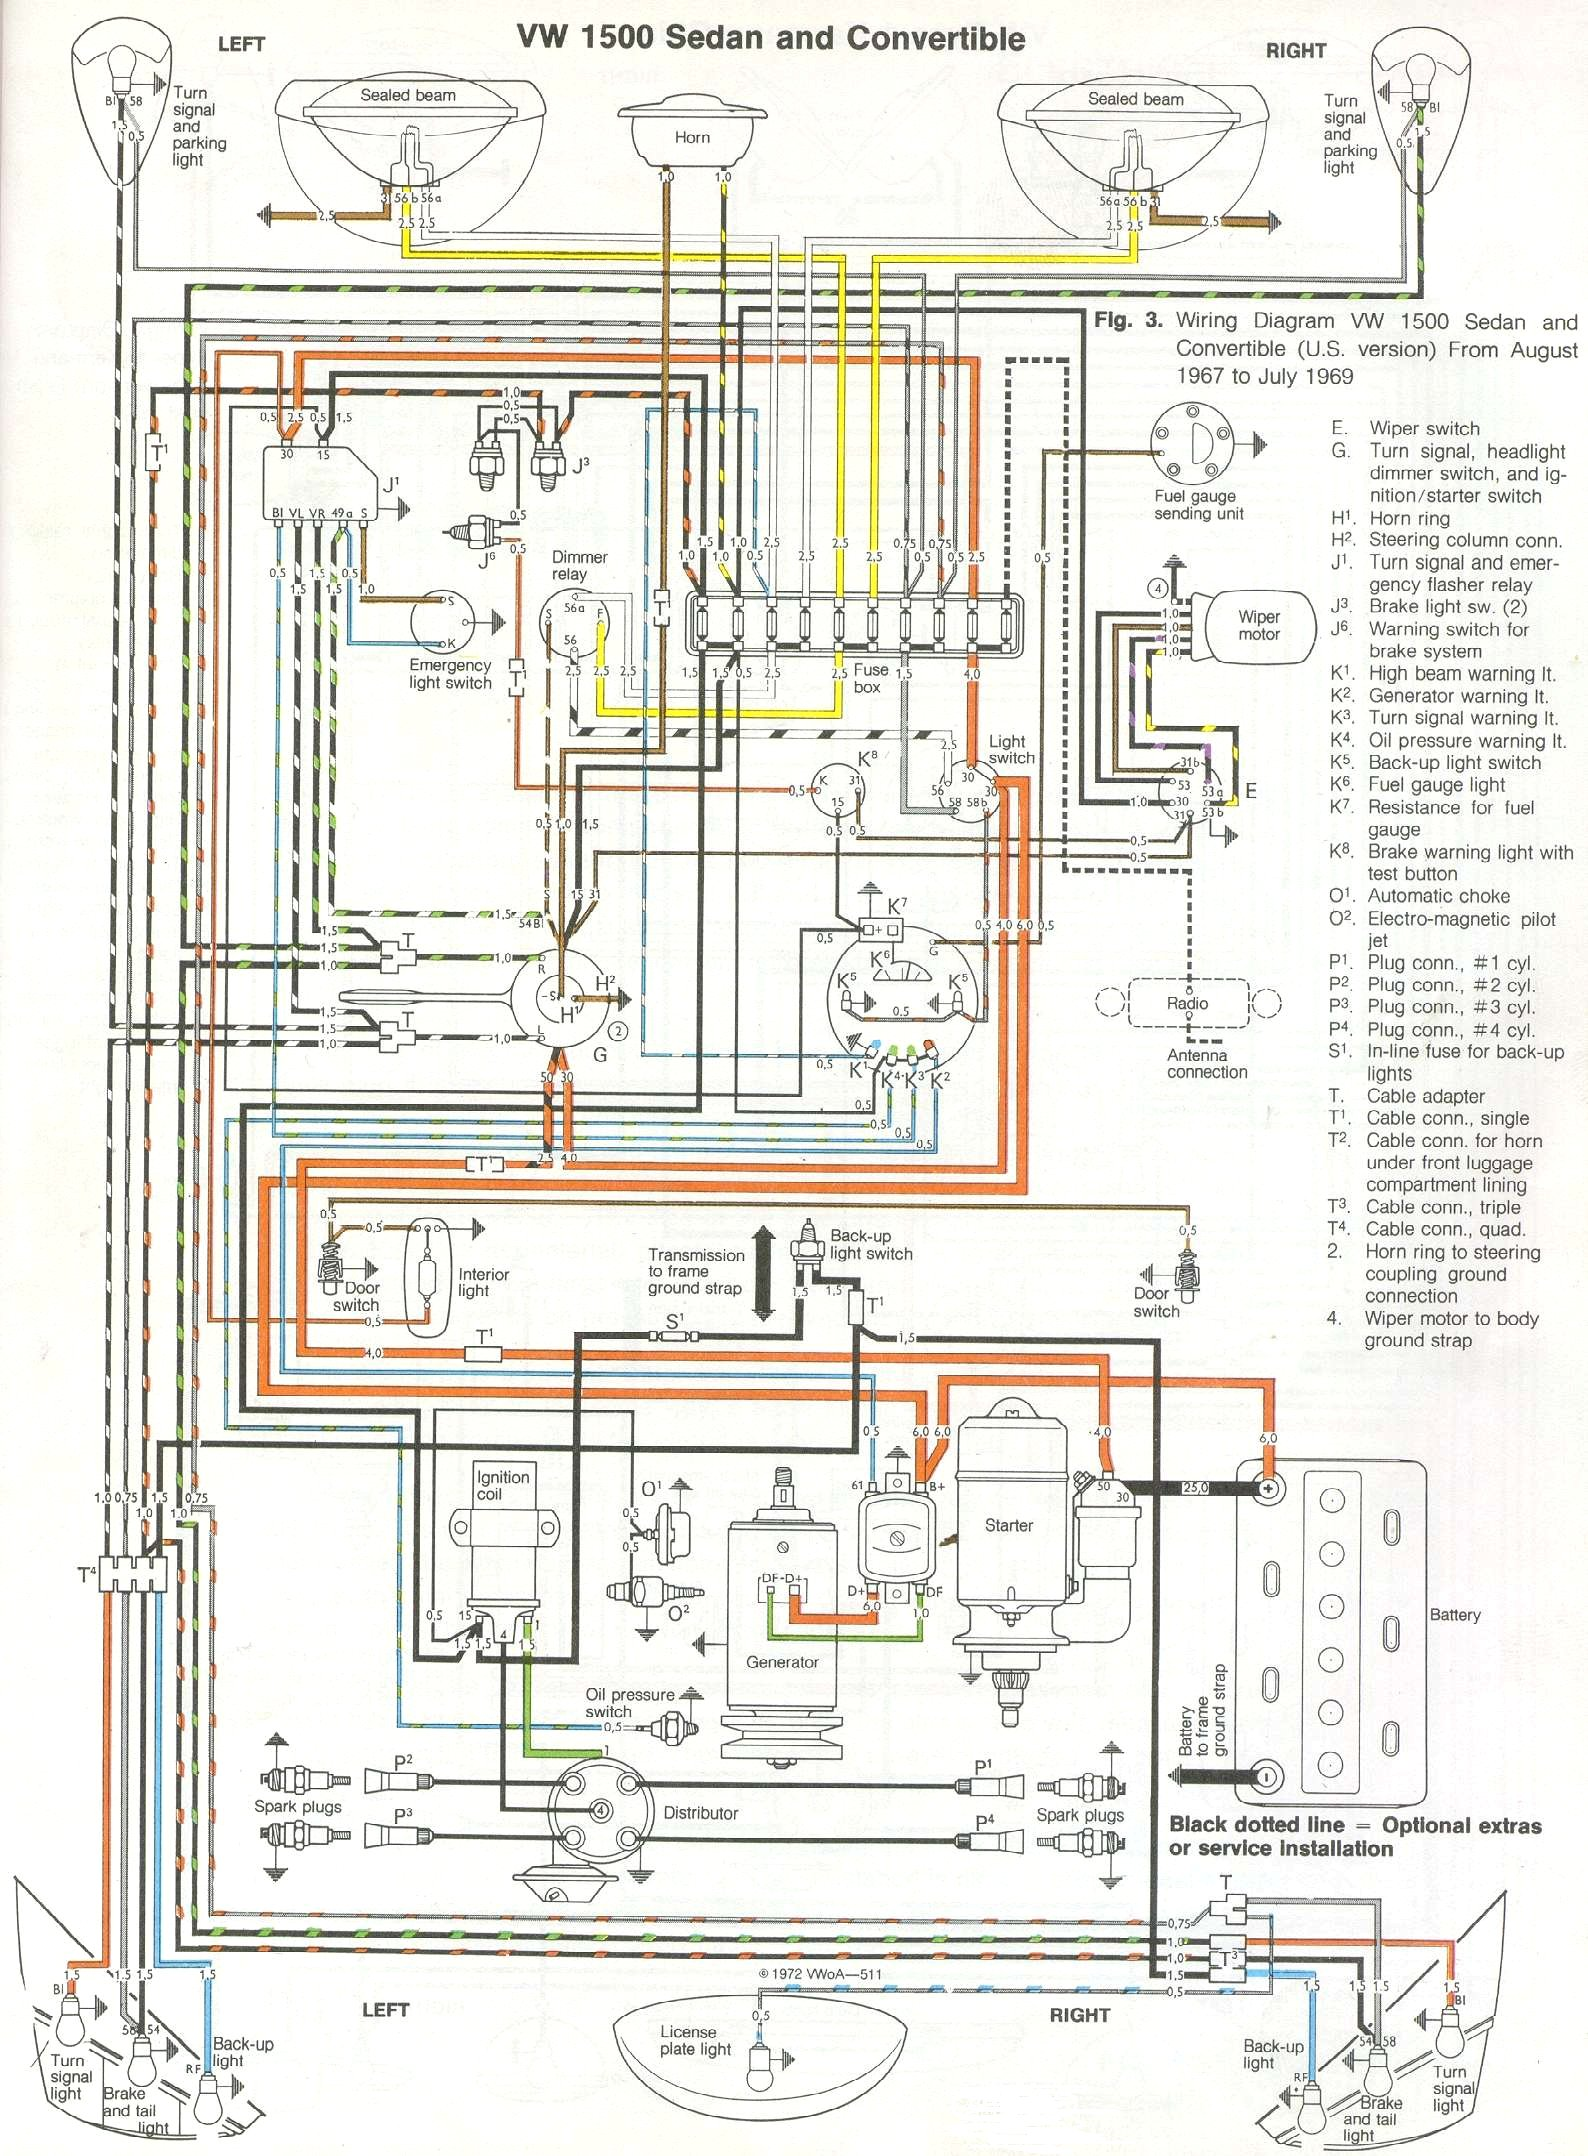 1968 69 beetle wiring diagram (usa) thegoldenbug com 1970 vw ignition wiring diagram 68 vw wiring diagram #1